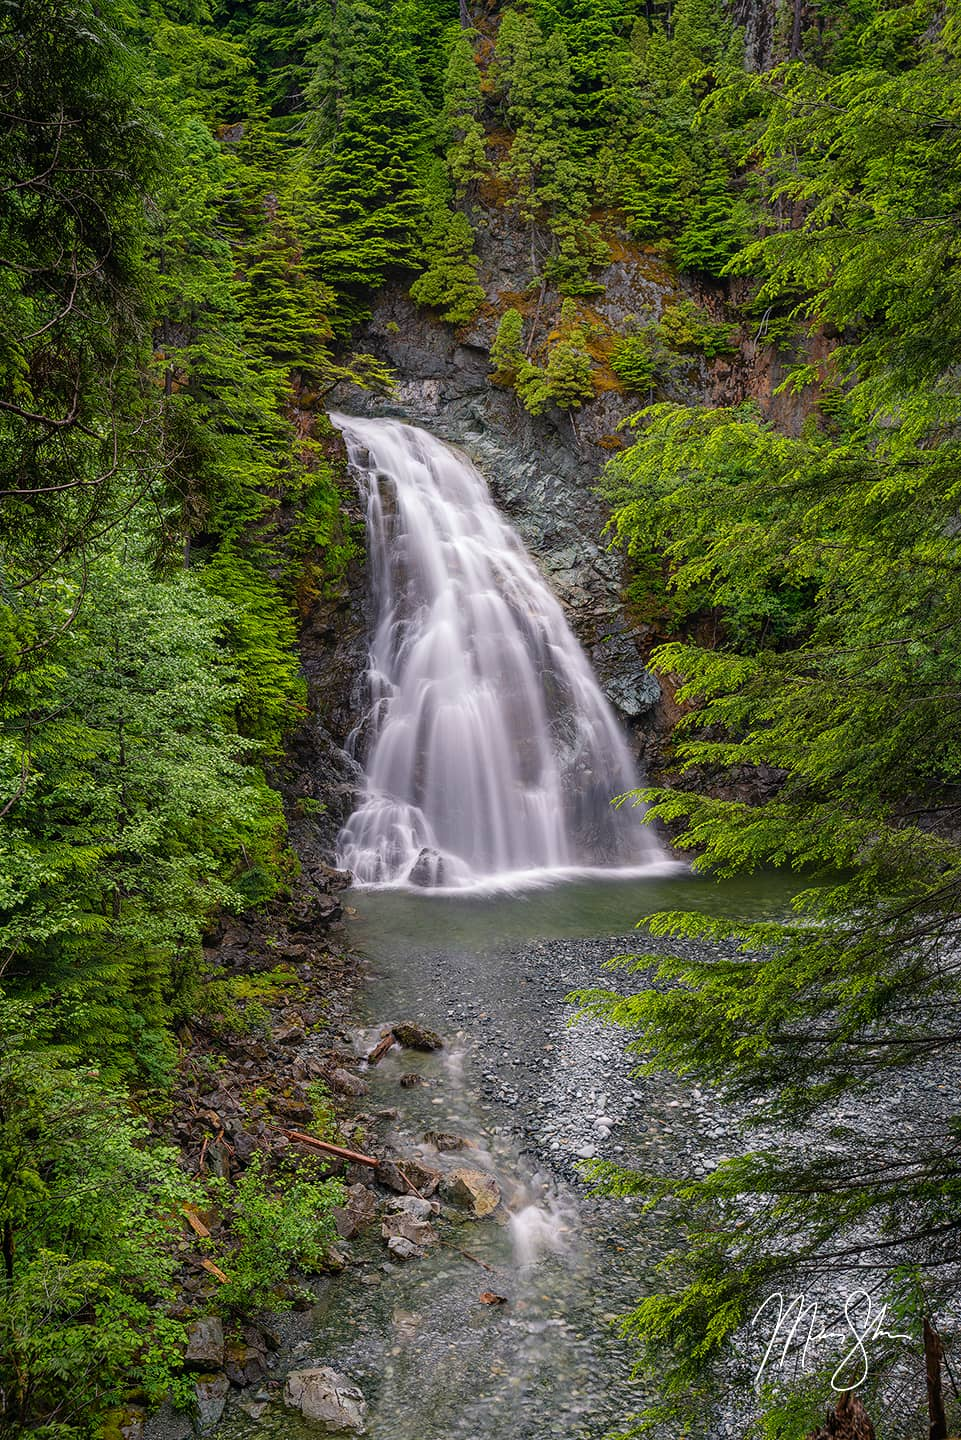 Open edition fine art print of Moore Creek Falls from Mickey Shannon Photography. Location: Kitimat, British Columbia, Canada